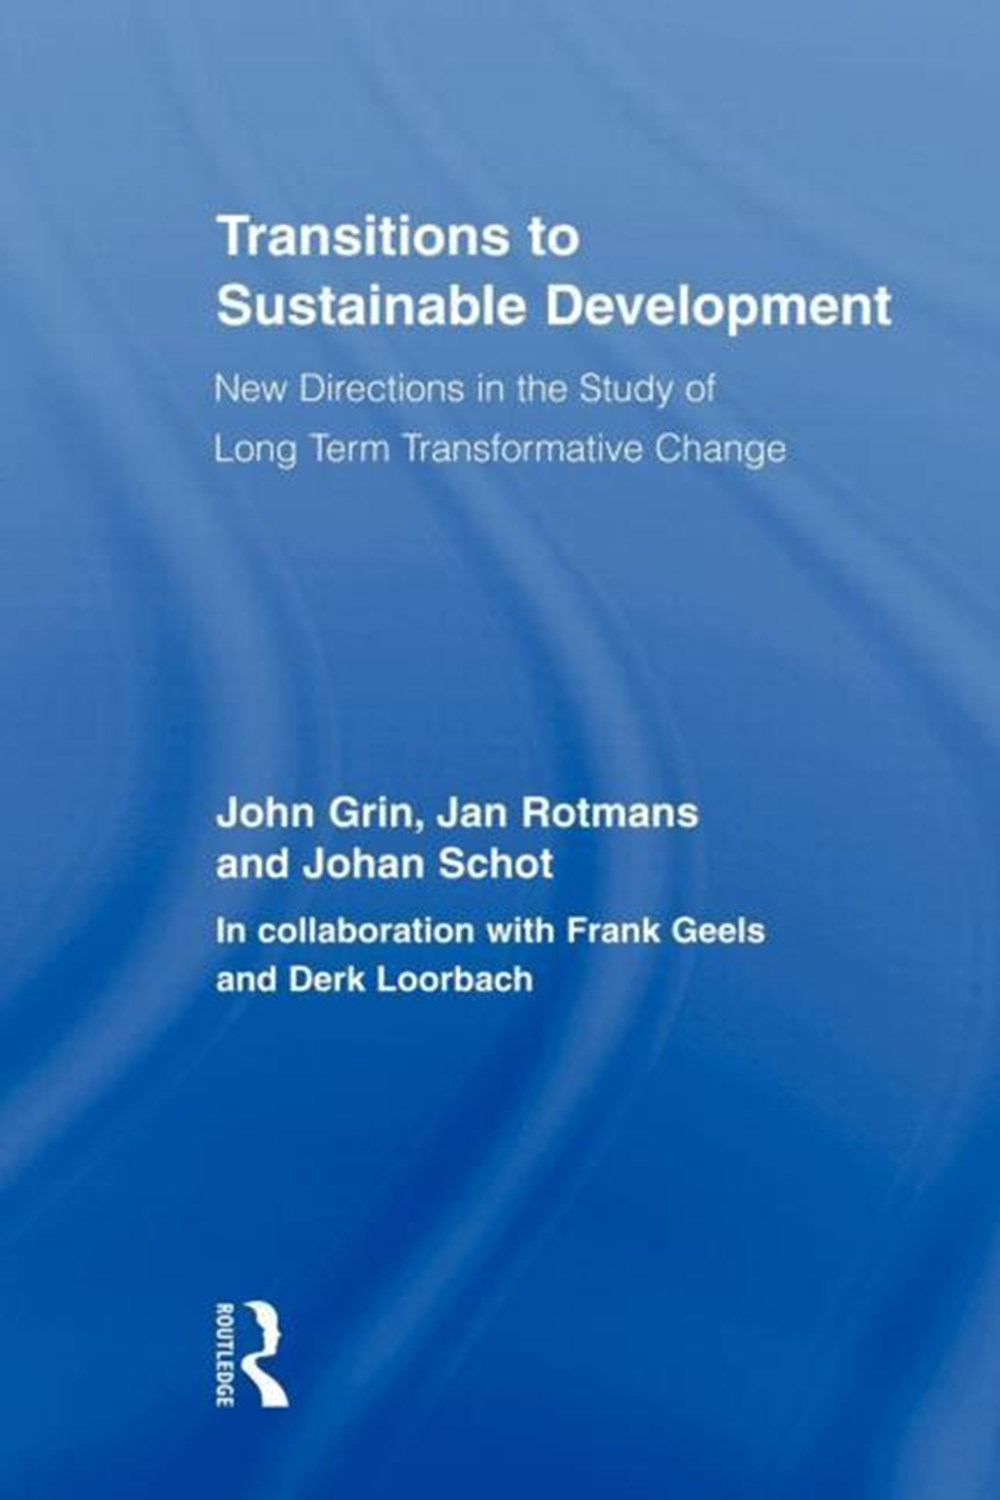 Transitions to Sustainable Development New Directions in the Study of Long Term Transformative Chang